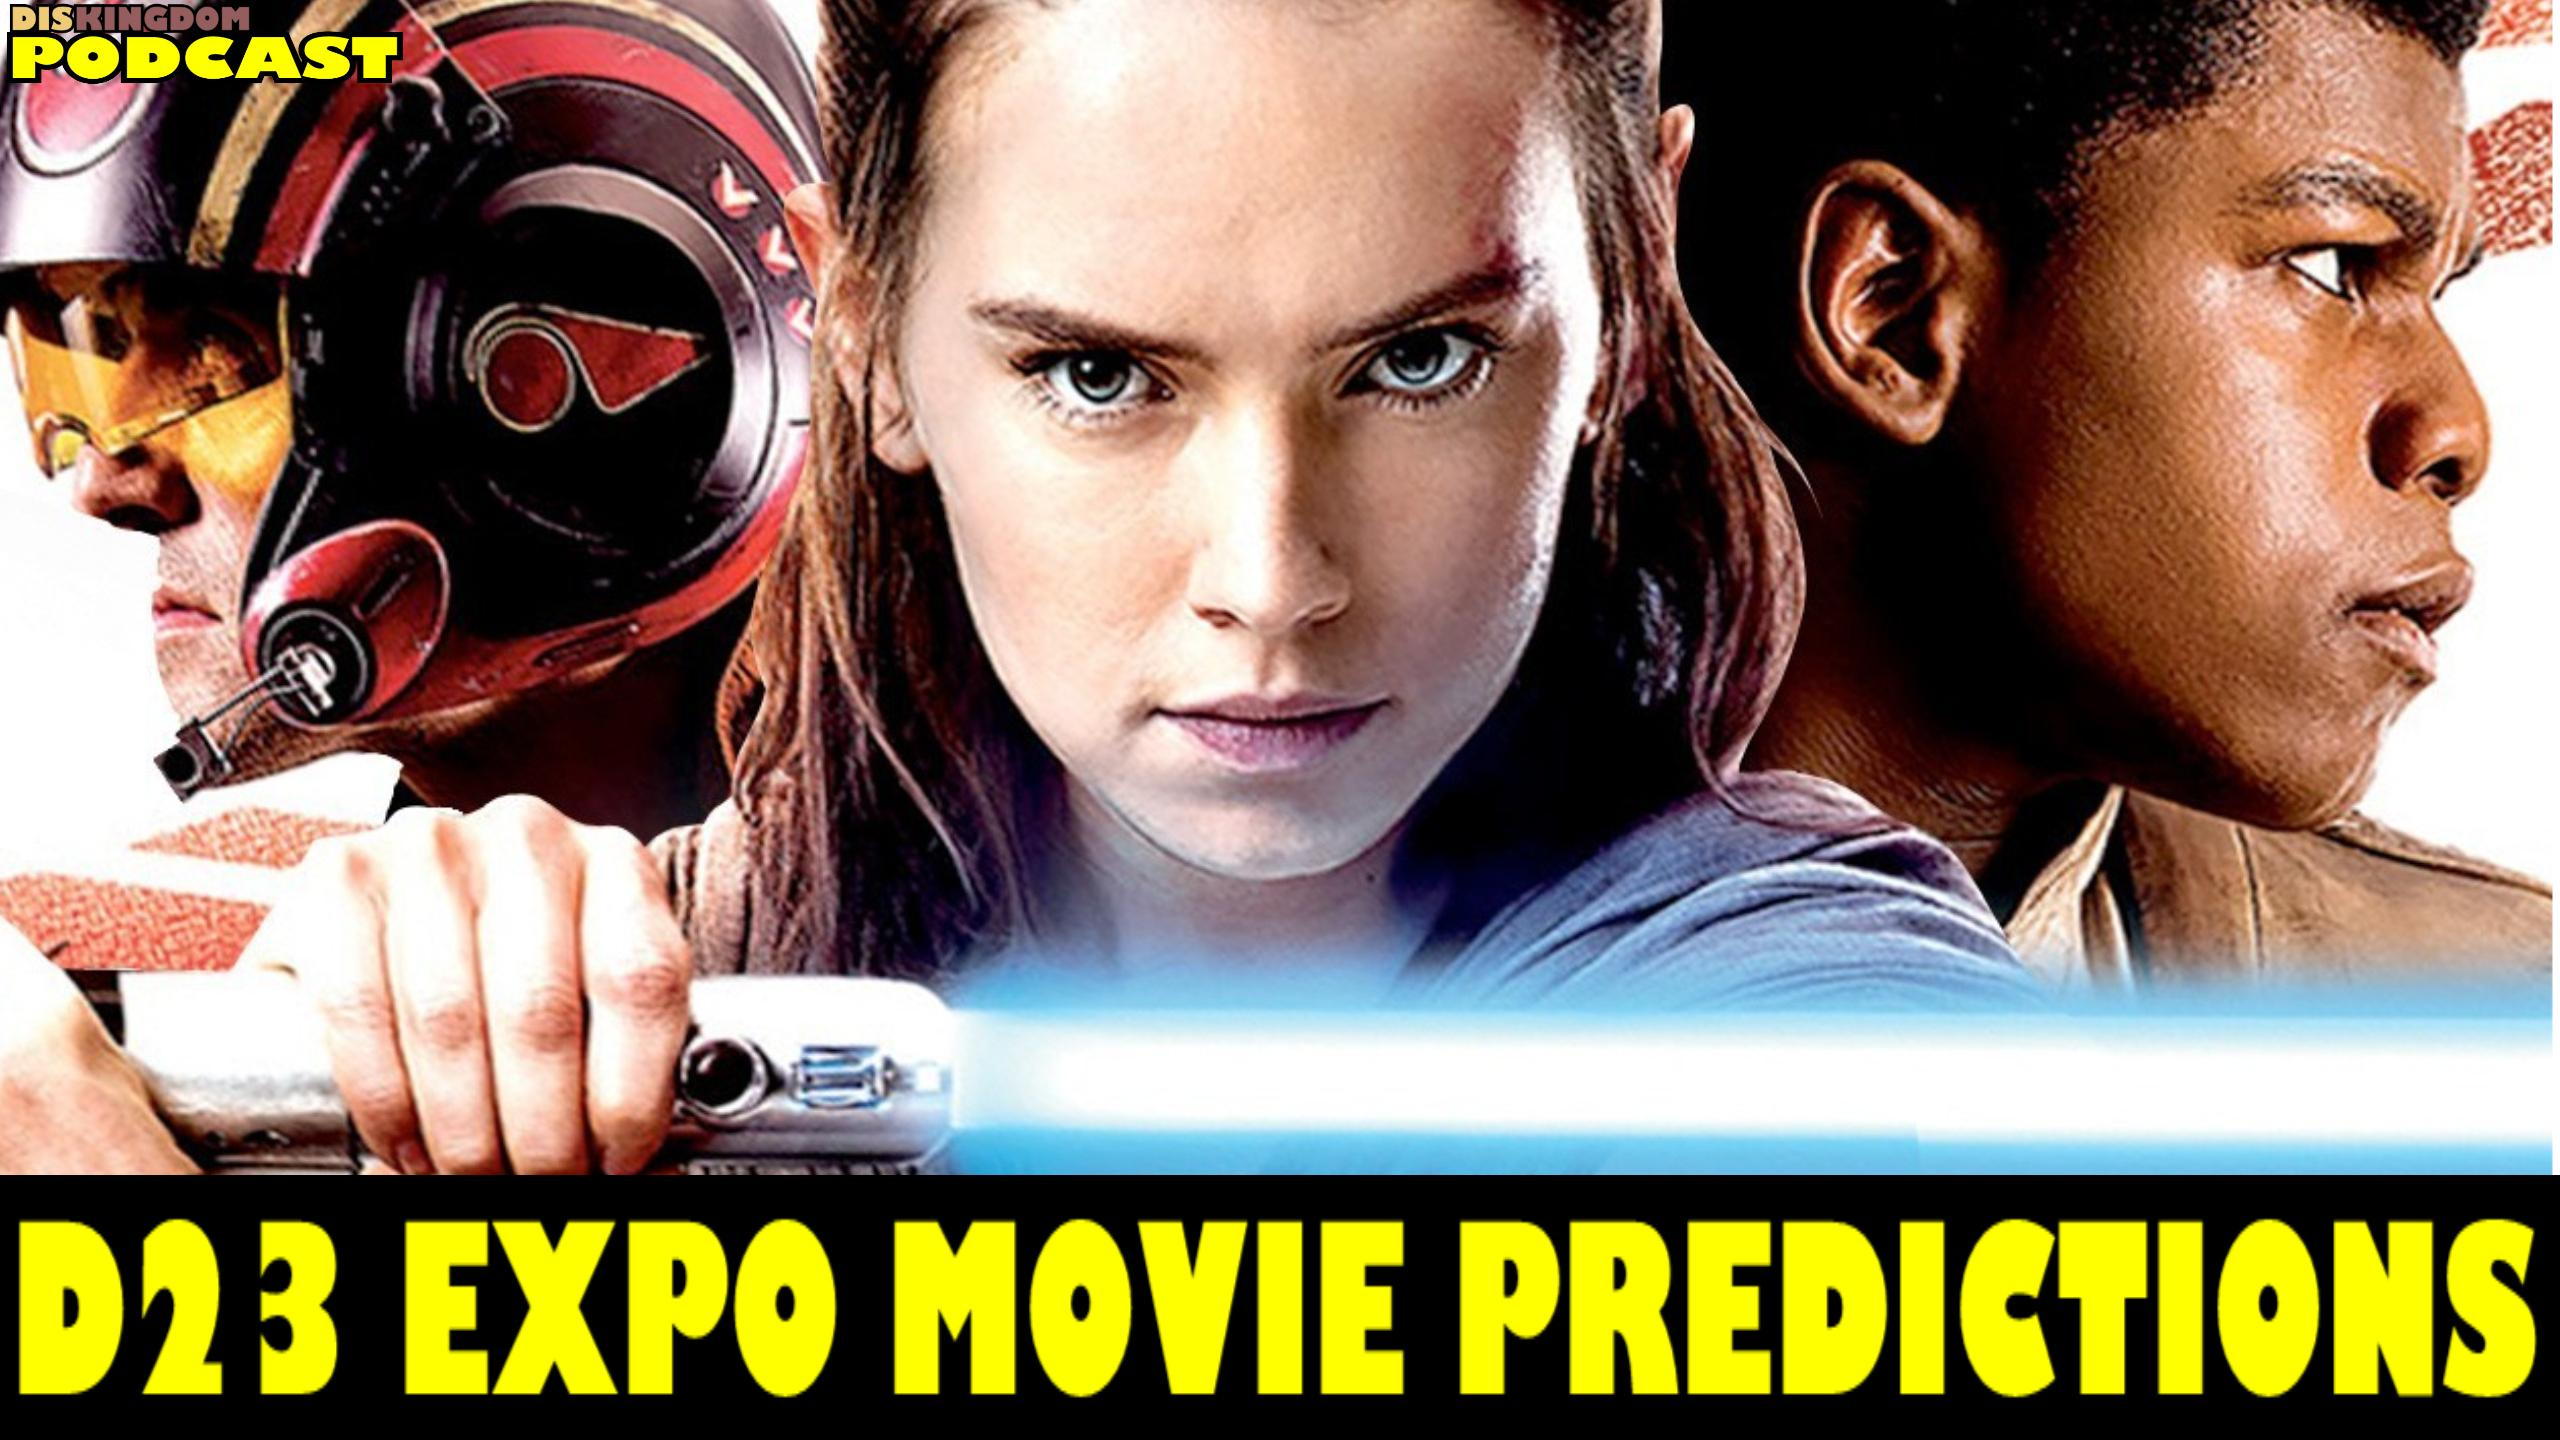 Our D23 Expo 2017 Movie Predictions | DisKingdom Podcast